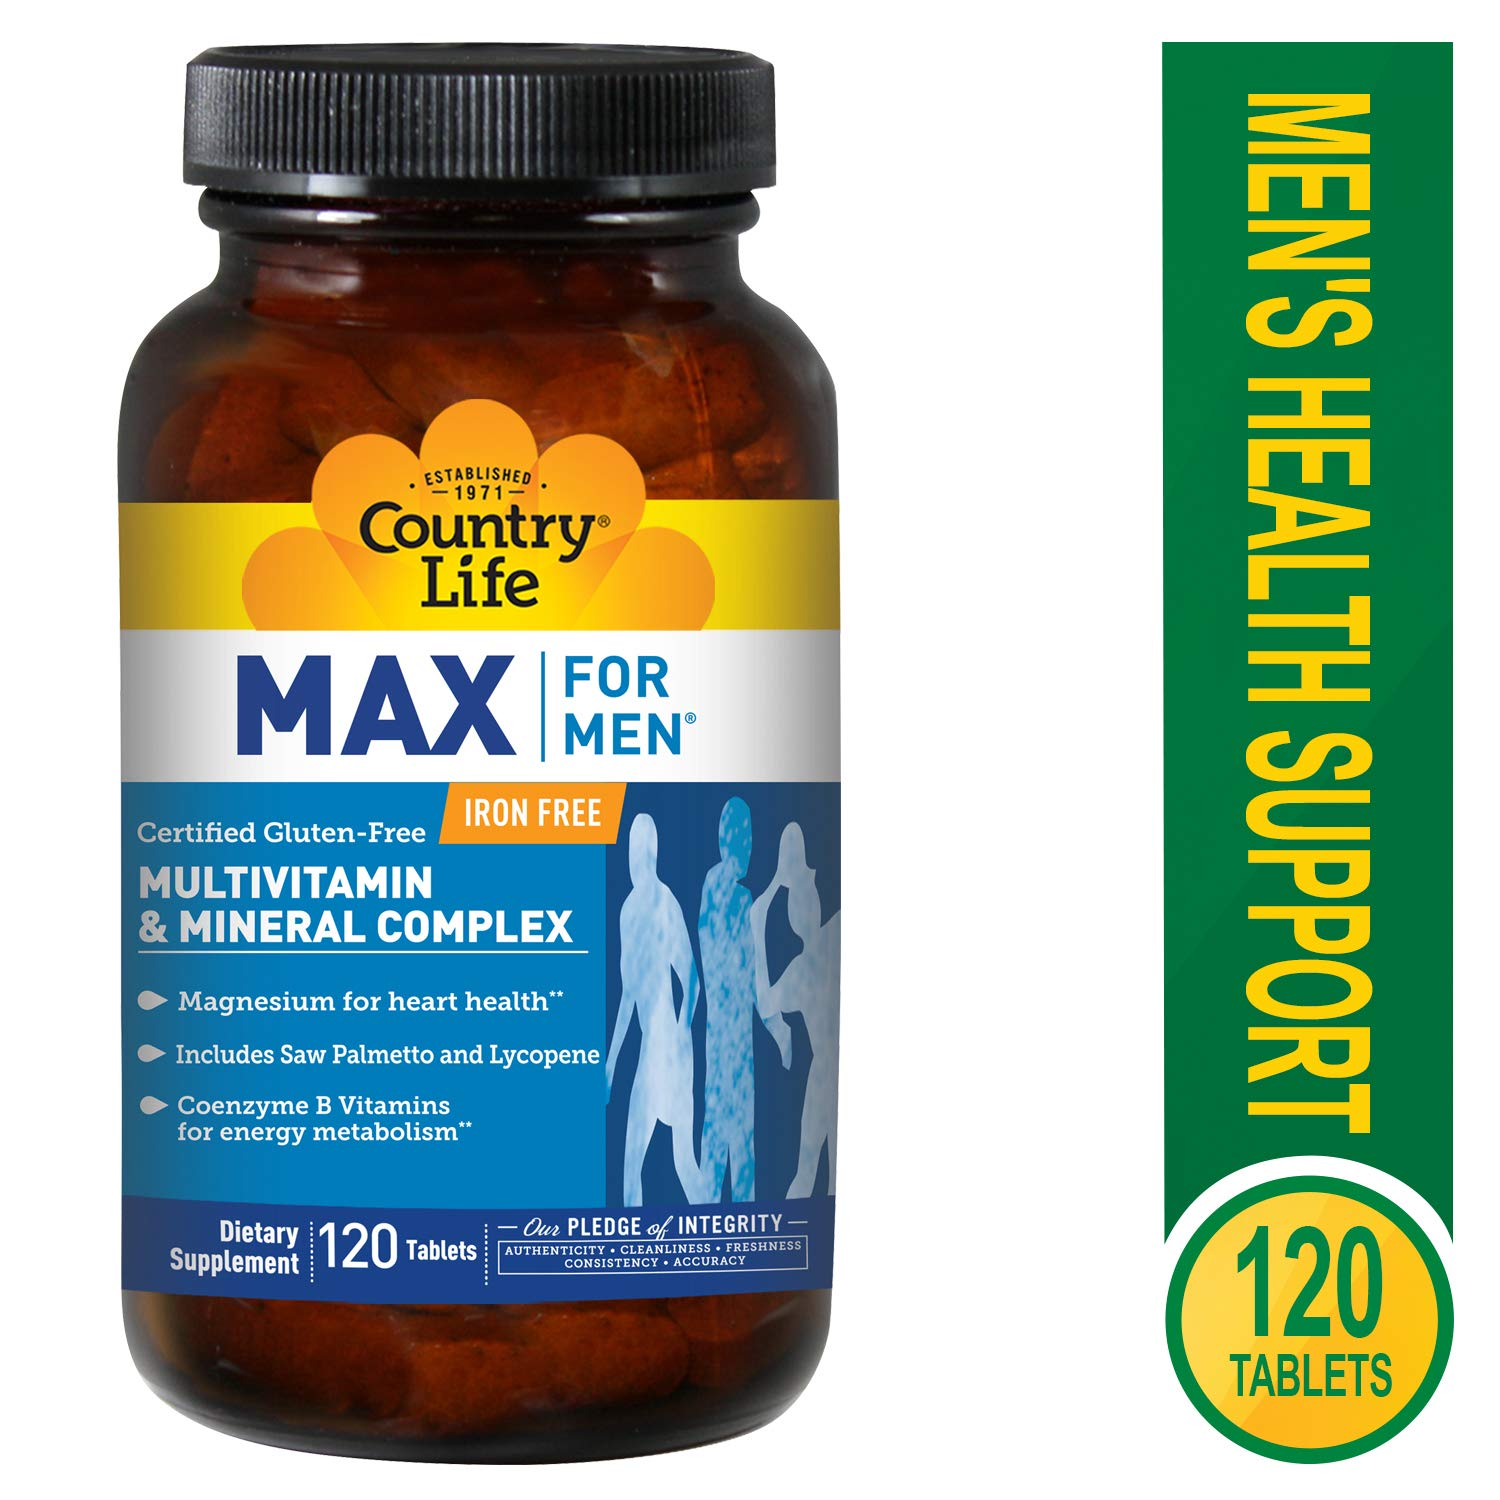 Country Life Max for Men Maxi-Sorb Multi-Vitamin Mineral, 120-Tablet